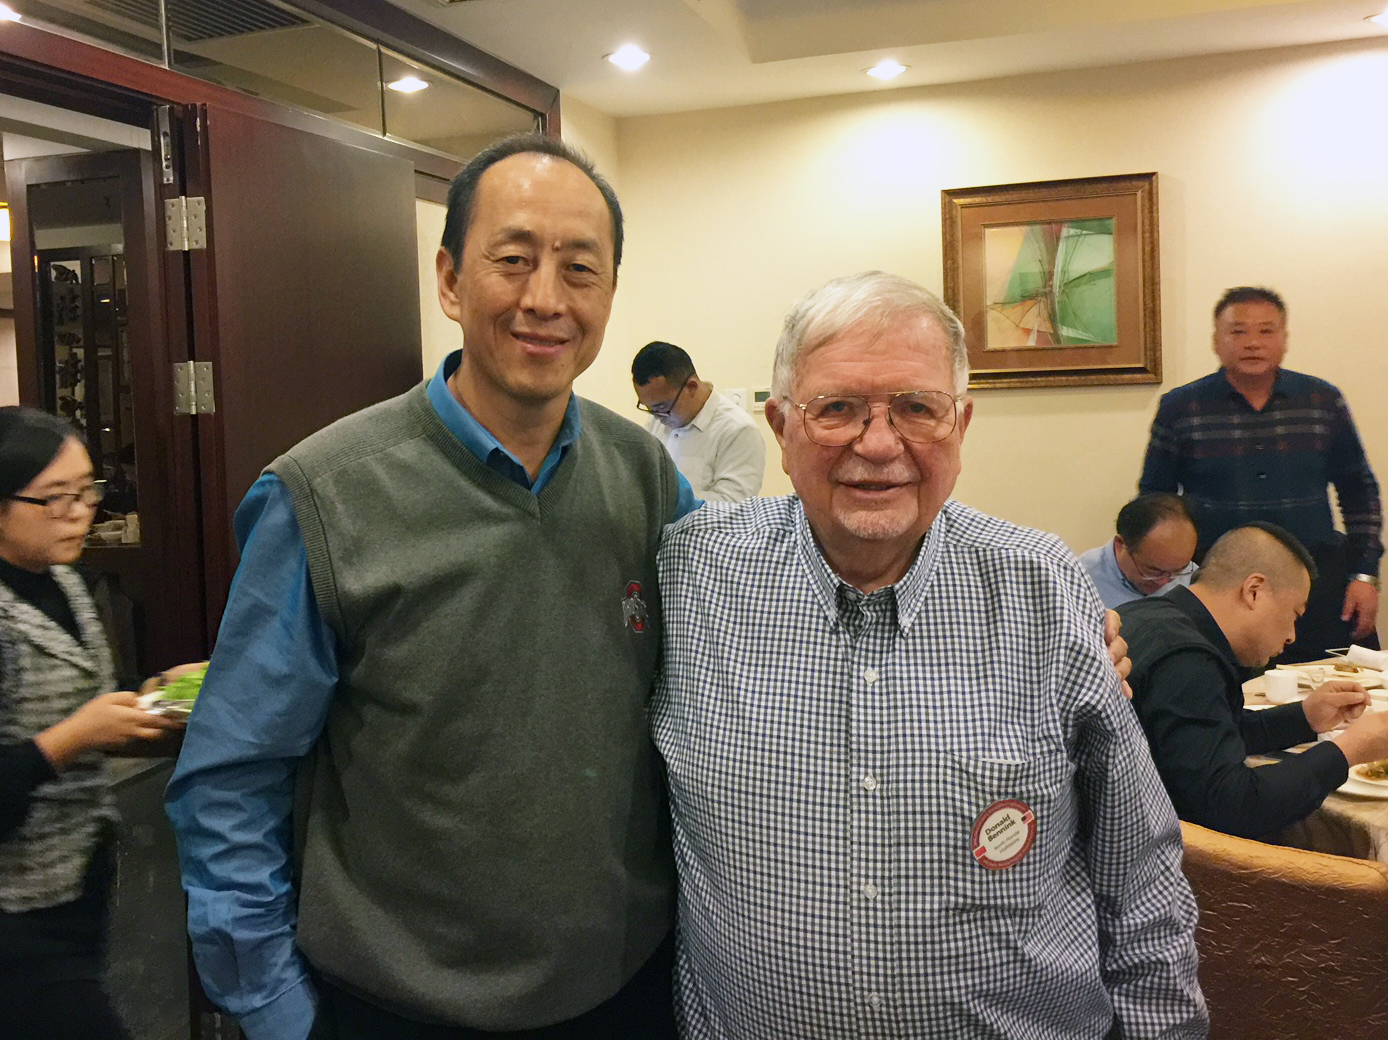 Dr. Donald Bennink with Mr. Zhang Yining